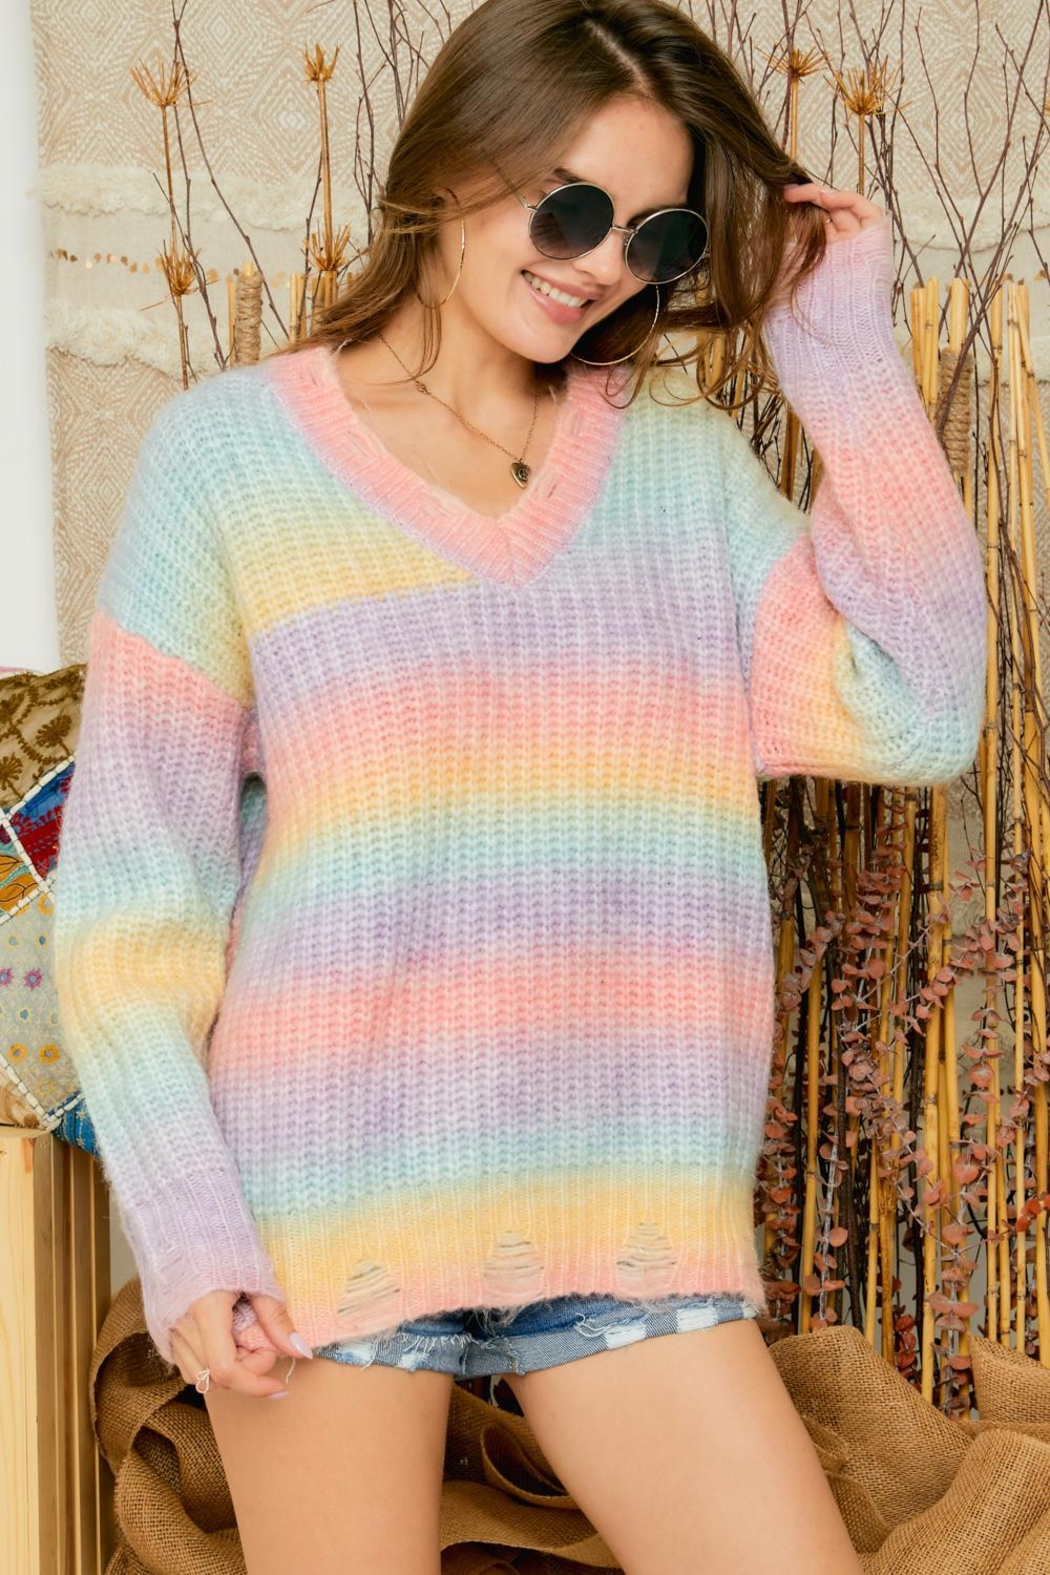 Adora Cotton Candy Ombre Tie Dye V Neck Distressed Knit Sweater Jumper - Main Image